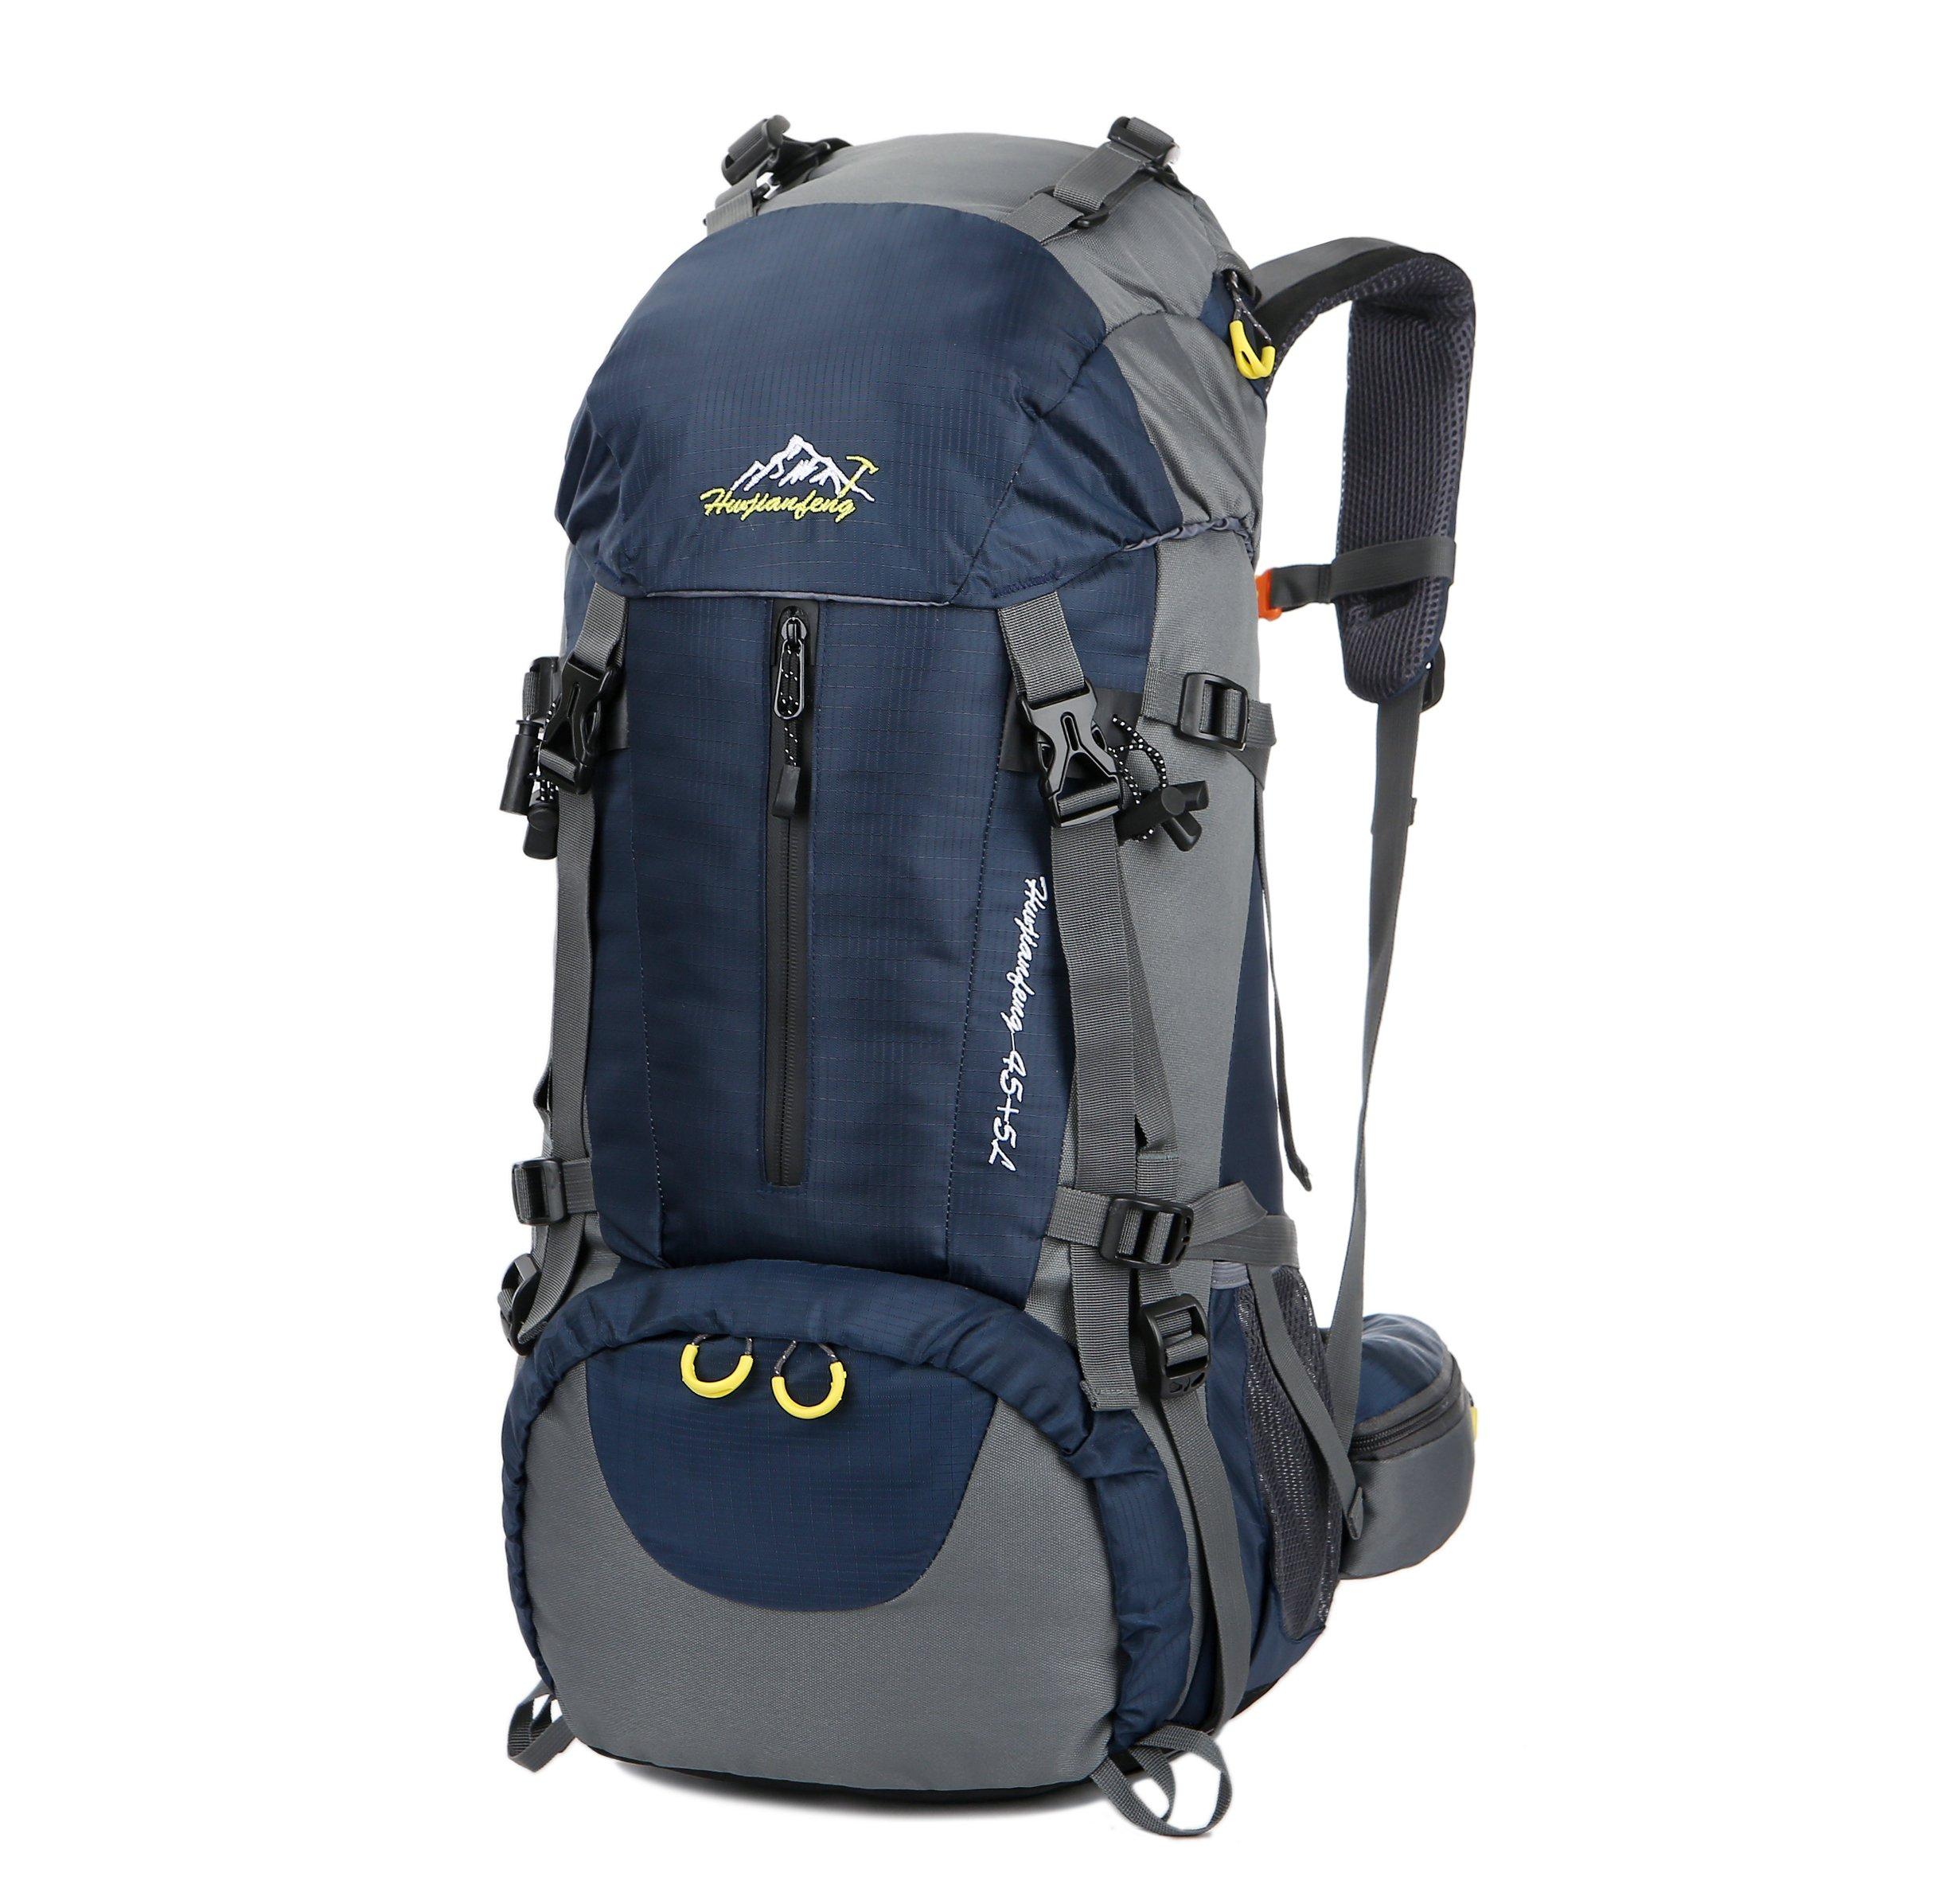 WoneNice 50L(45+5) Waterproof Hiking Backpack - Outdoor Sport Daypack with Rain Cover (Dark Blue, 50L)